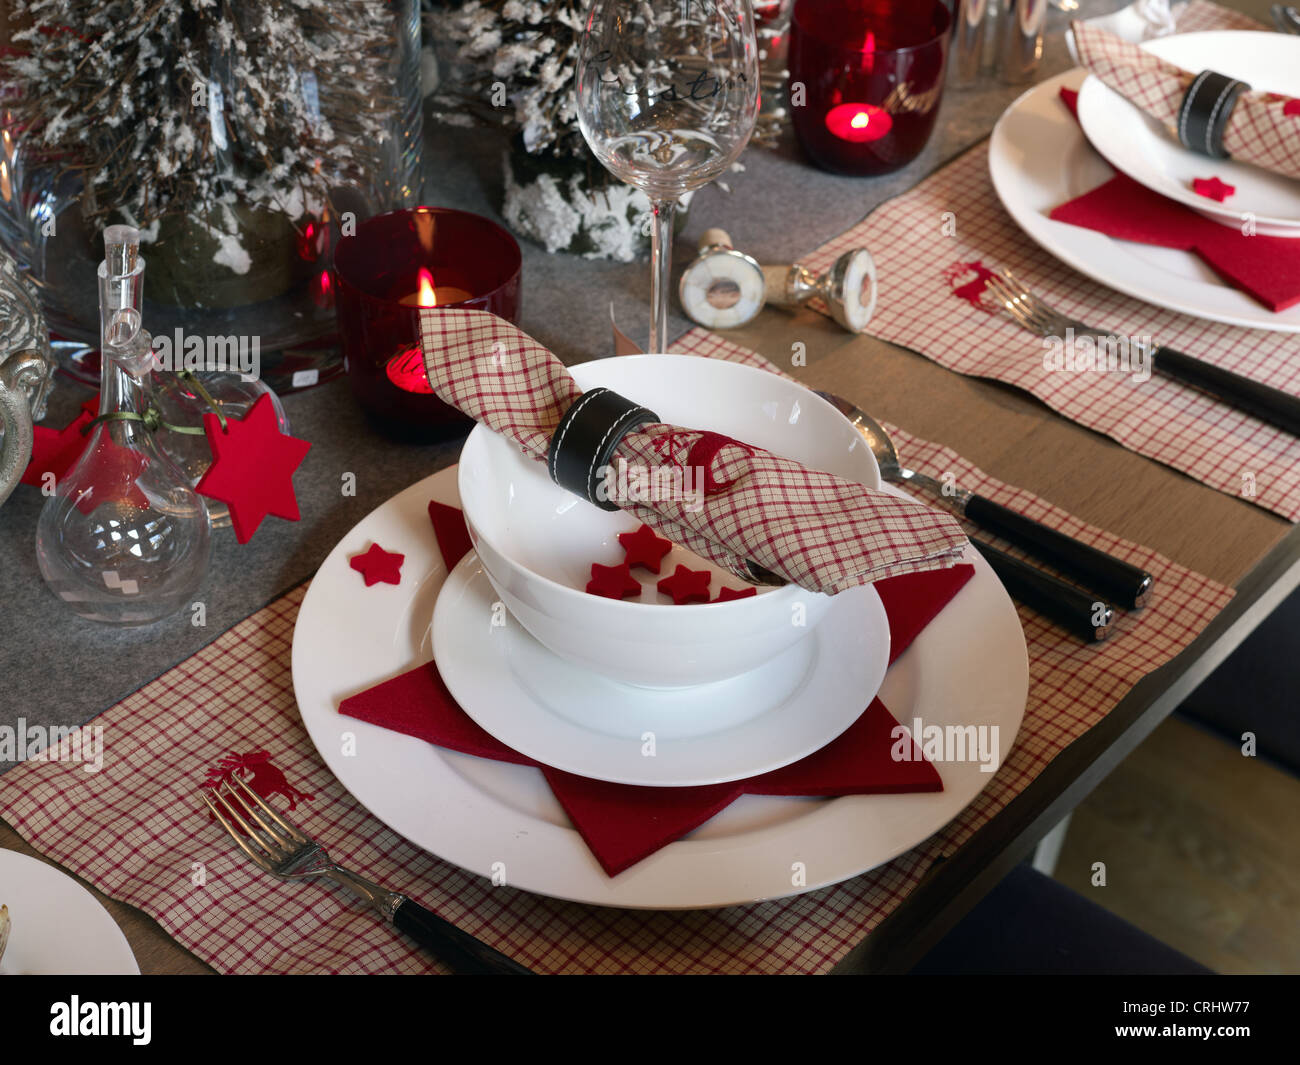 Well-laid table with Christmas decoration - Stock Image